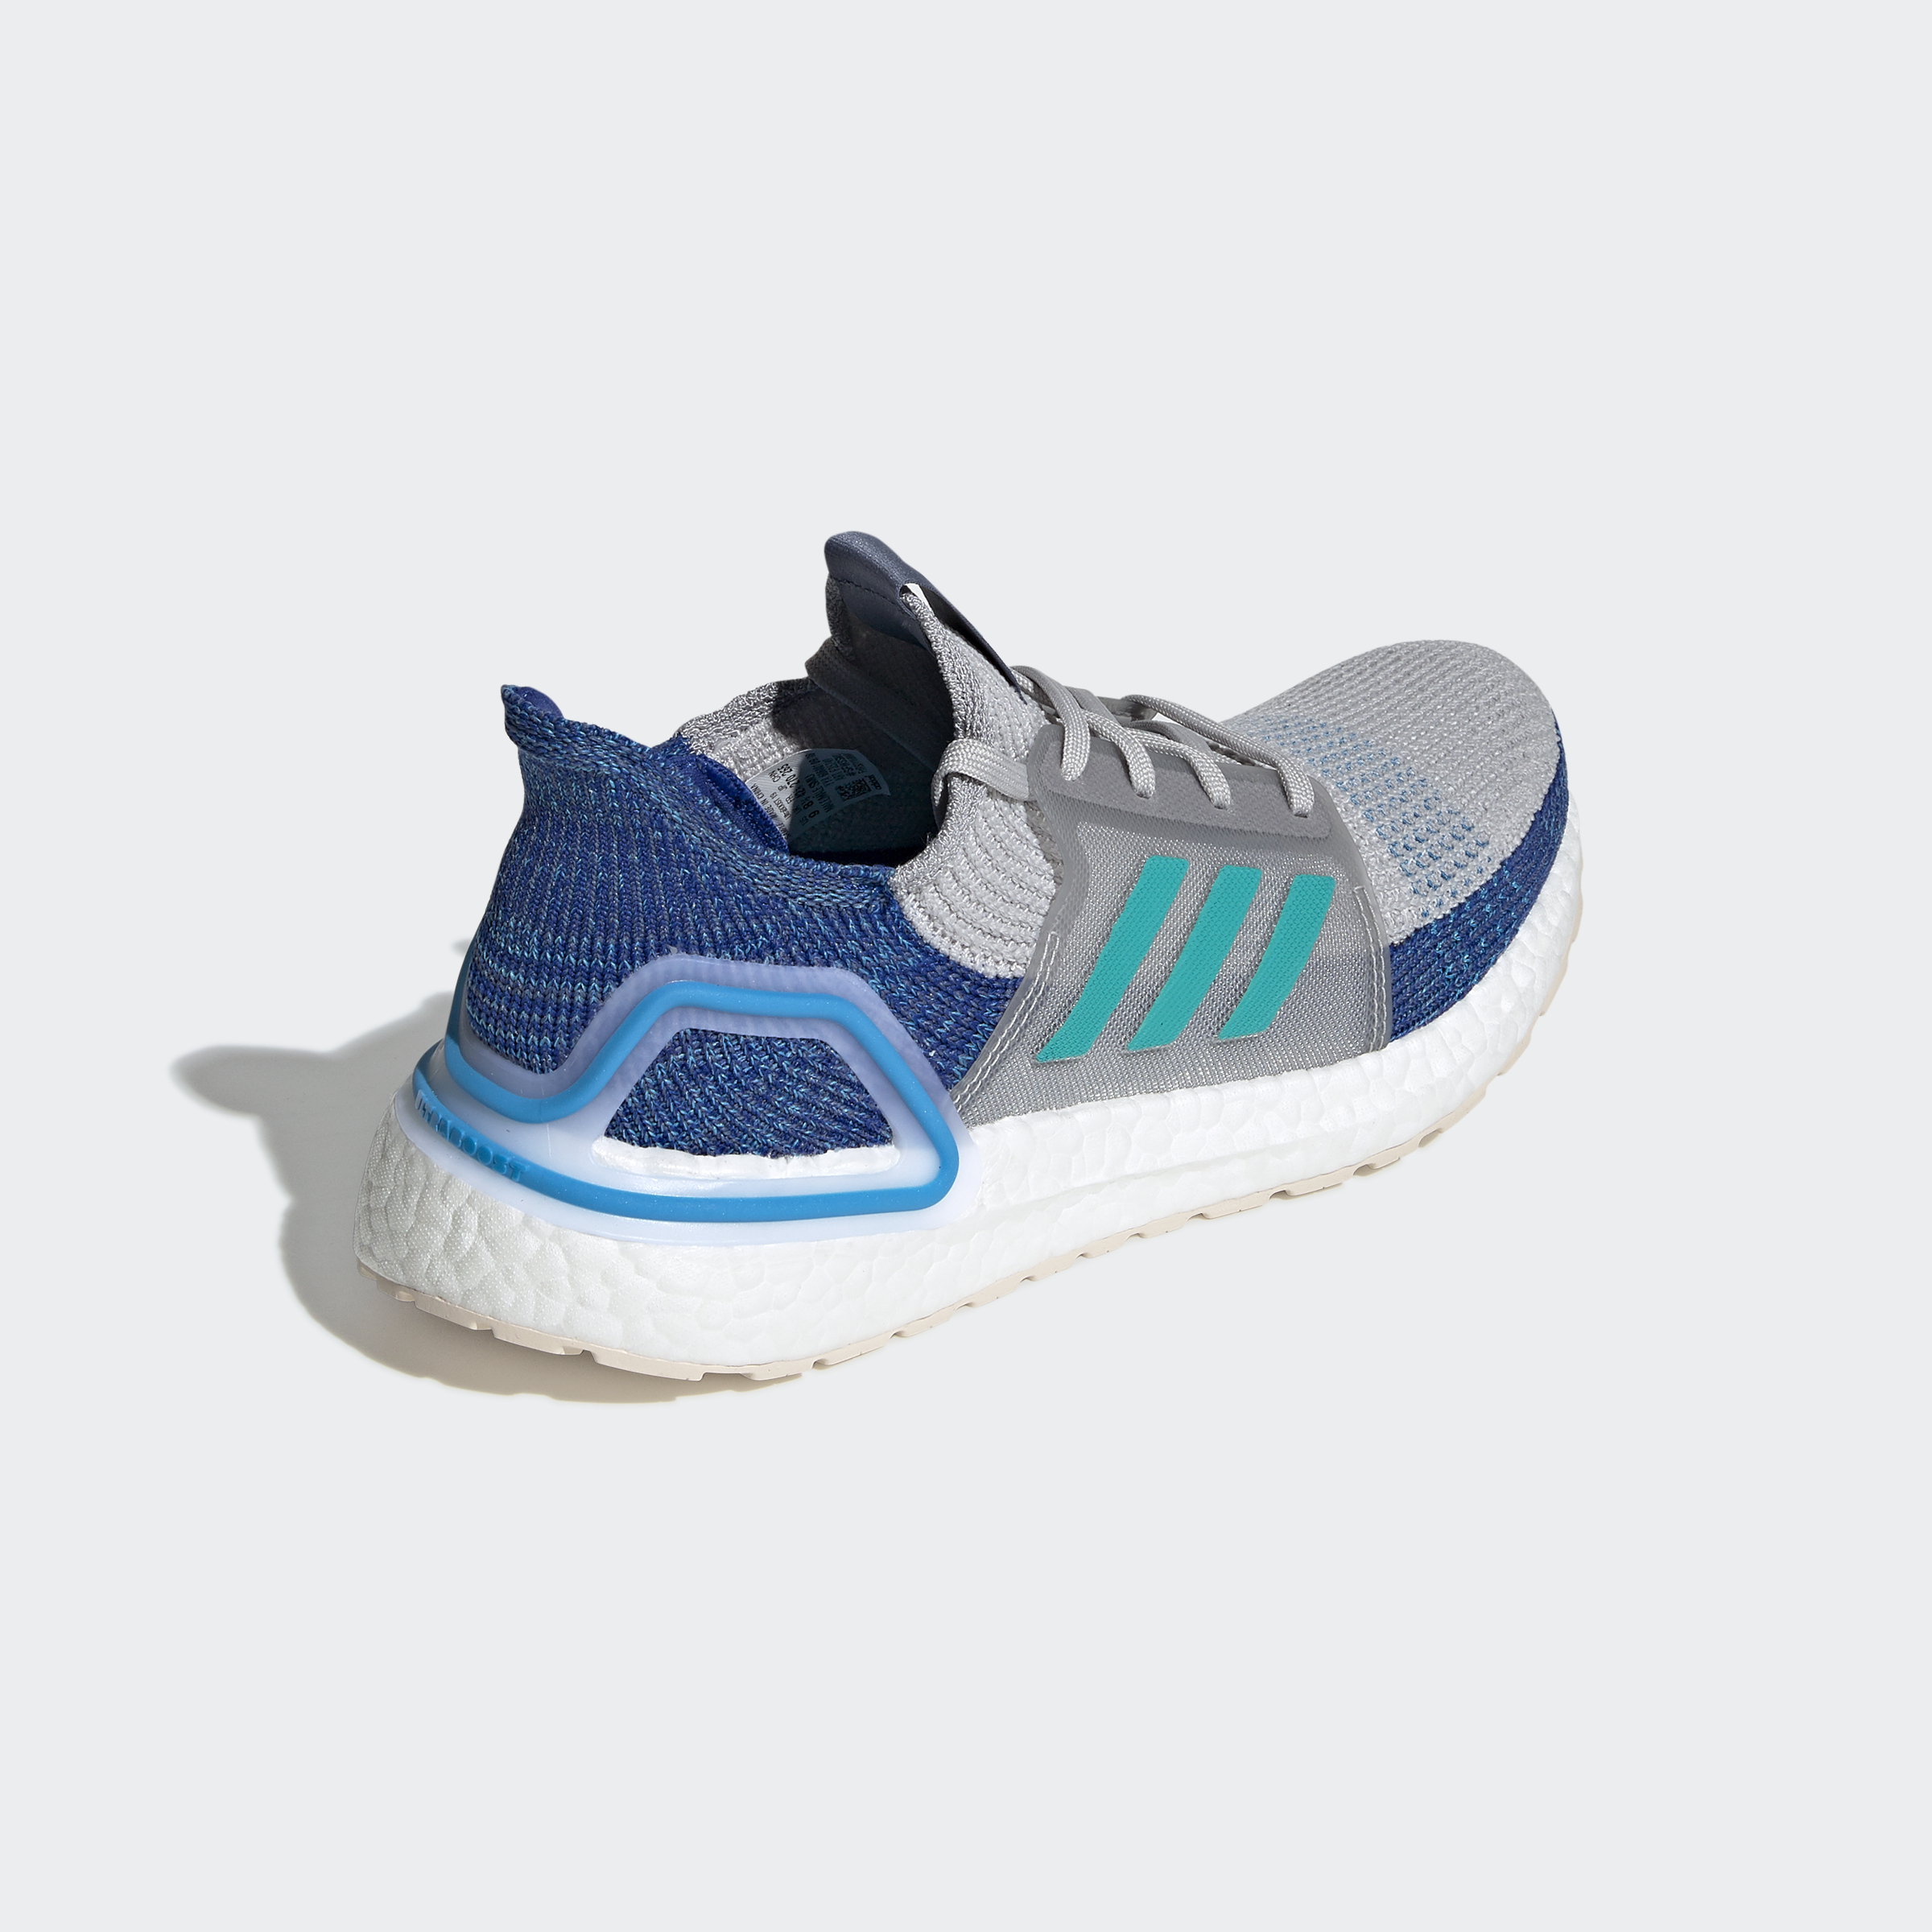 adidas-Ultraboost-19-Shoes-Athletic-amp-Sneakers thumbnail 34